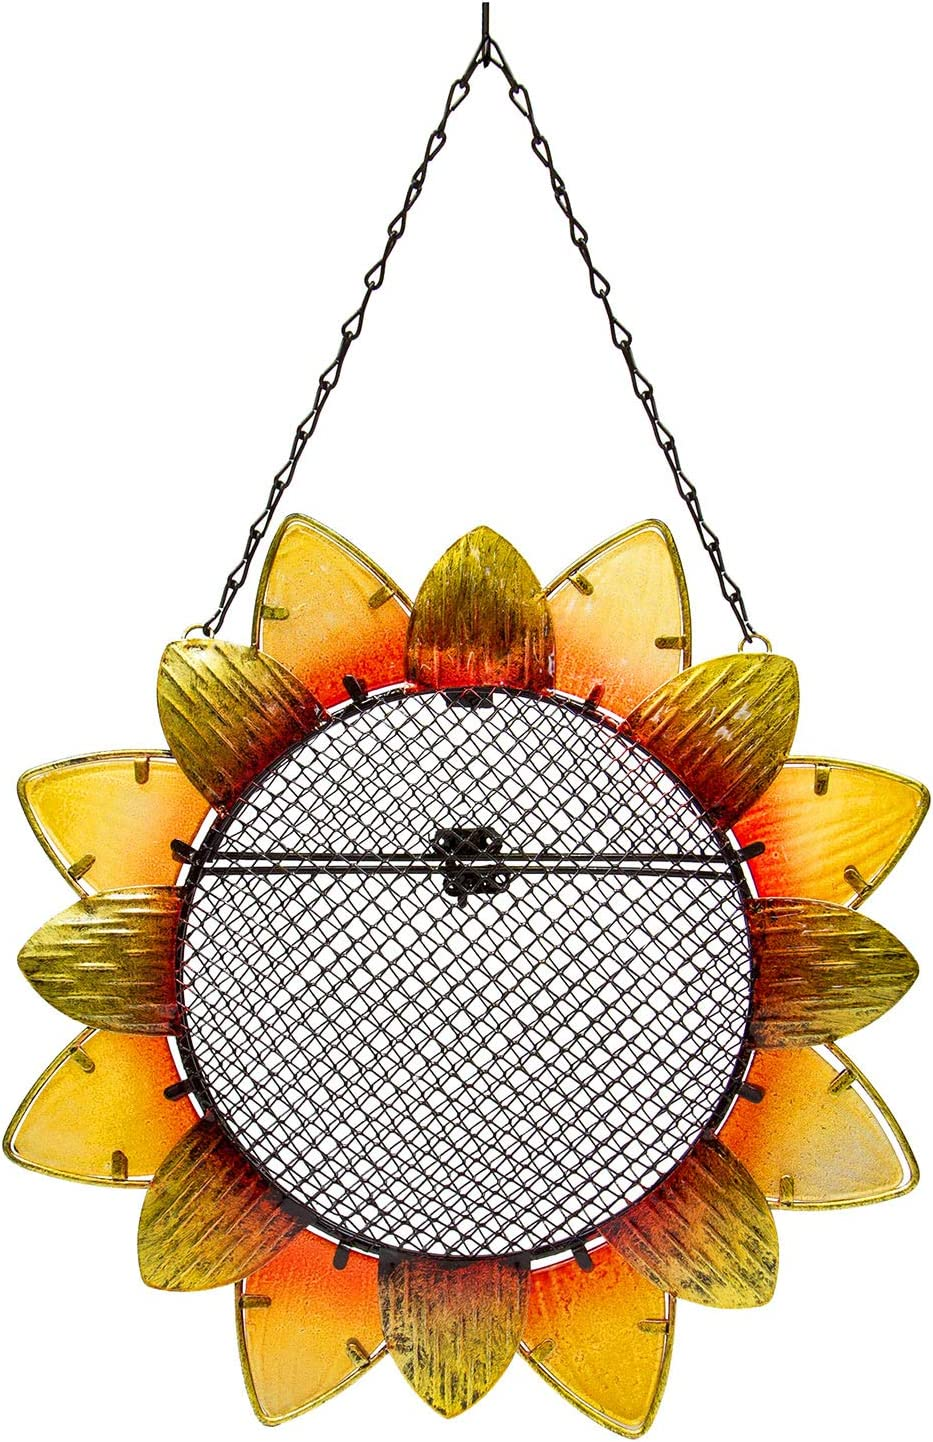 "Evergreen Garden Sunflower Metal and Glass Hanging Mesh Bird Feeder - 12.5""W x 3"" D x 17"" H"